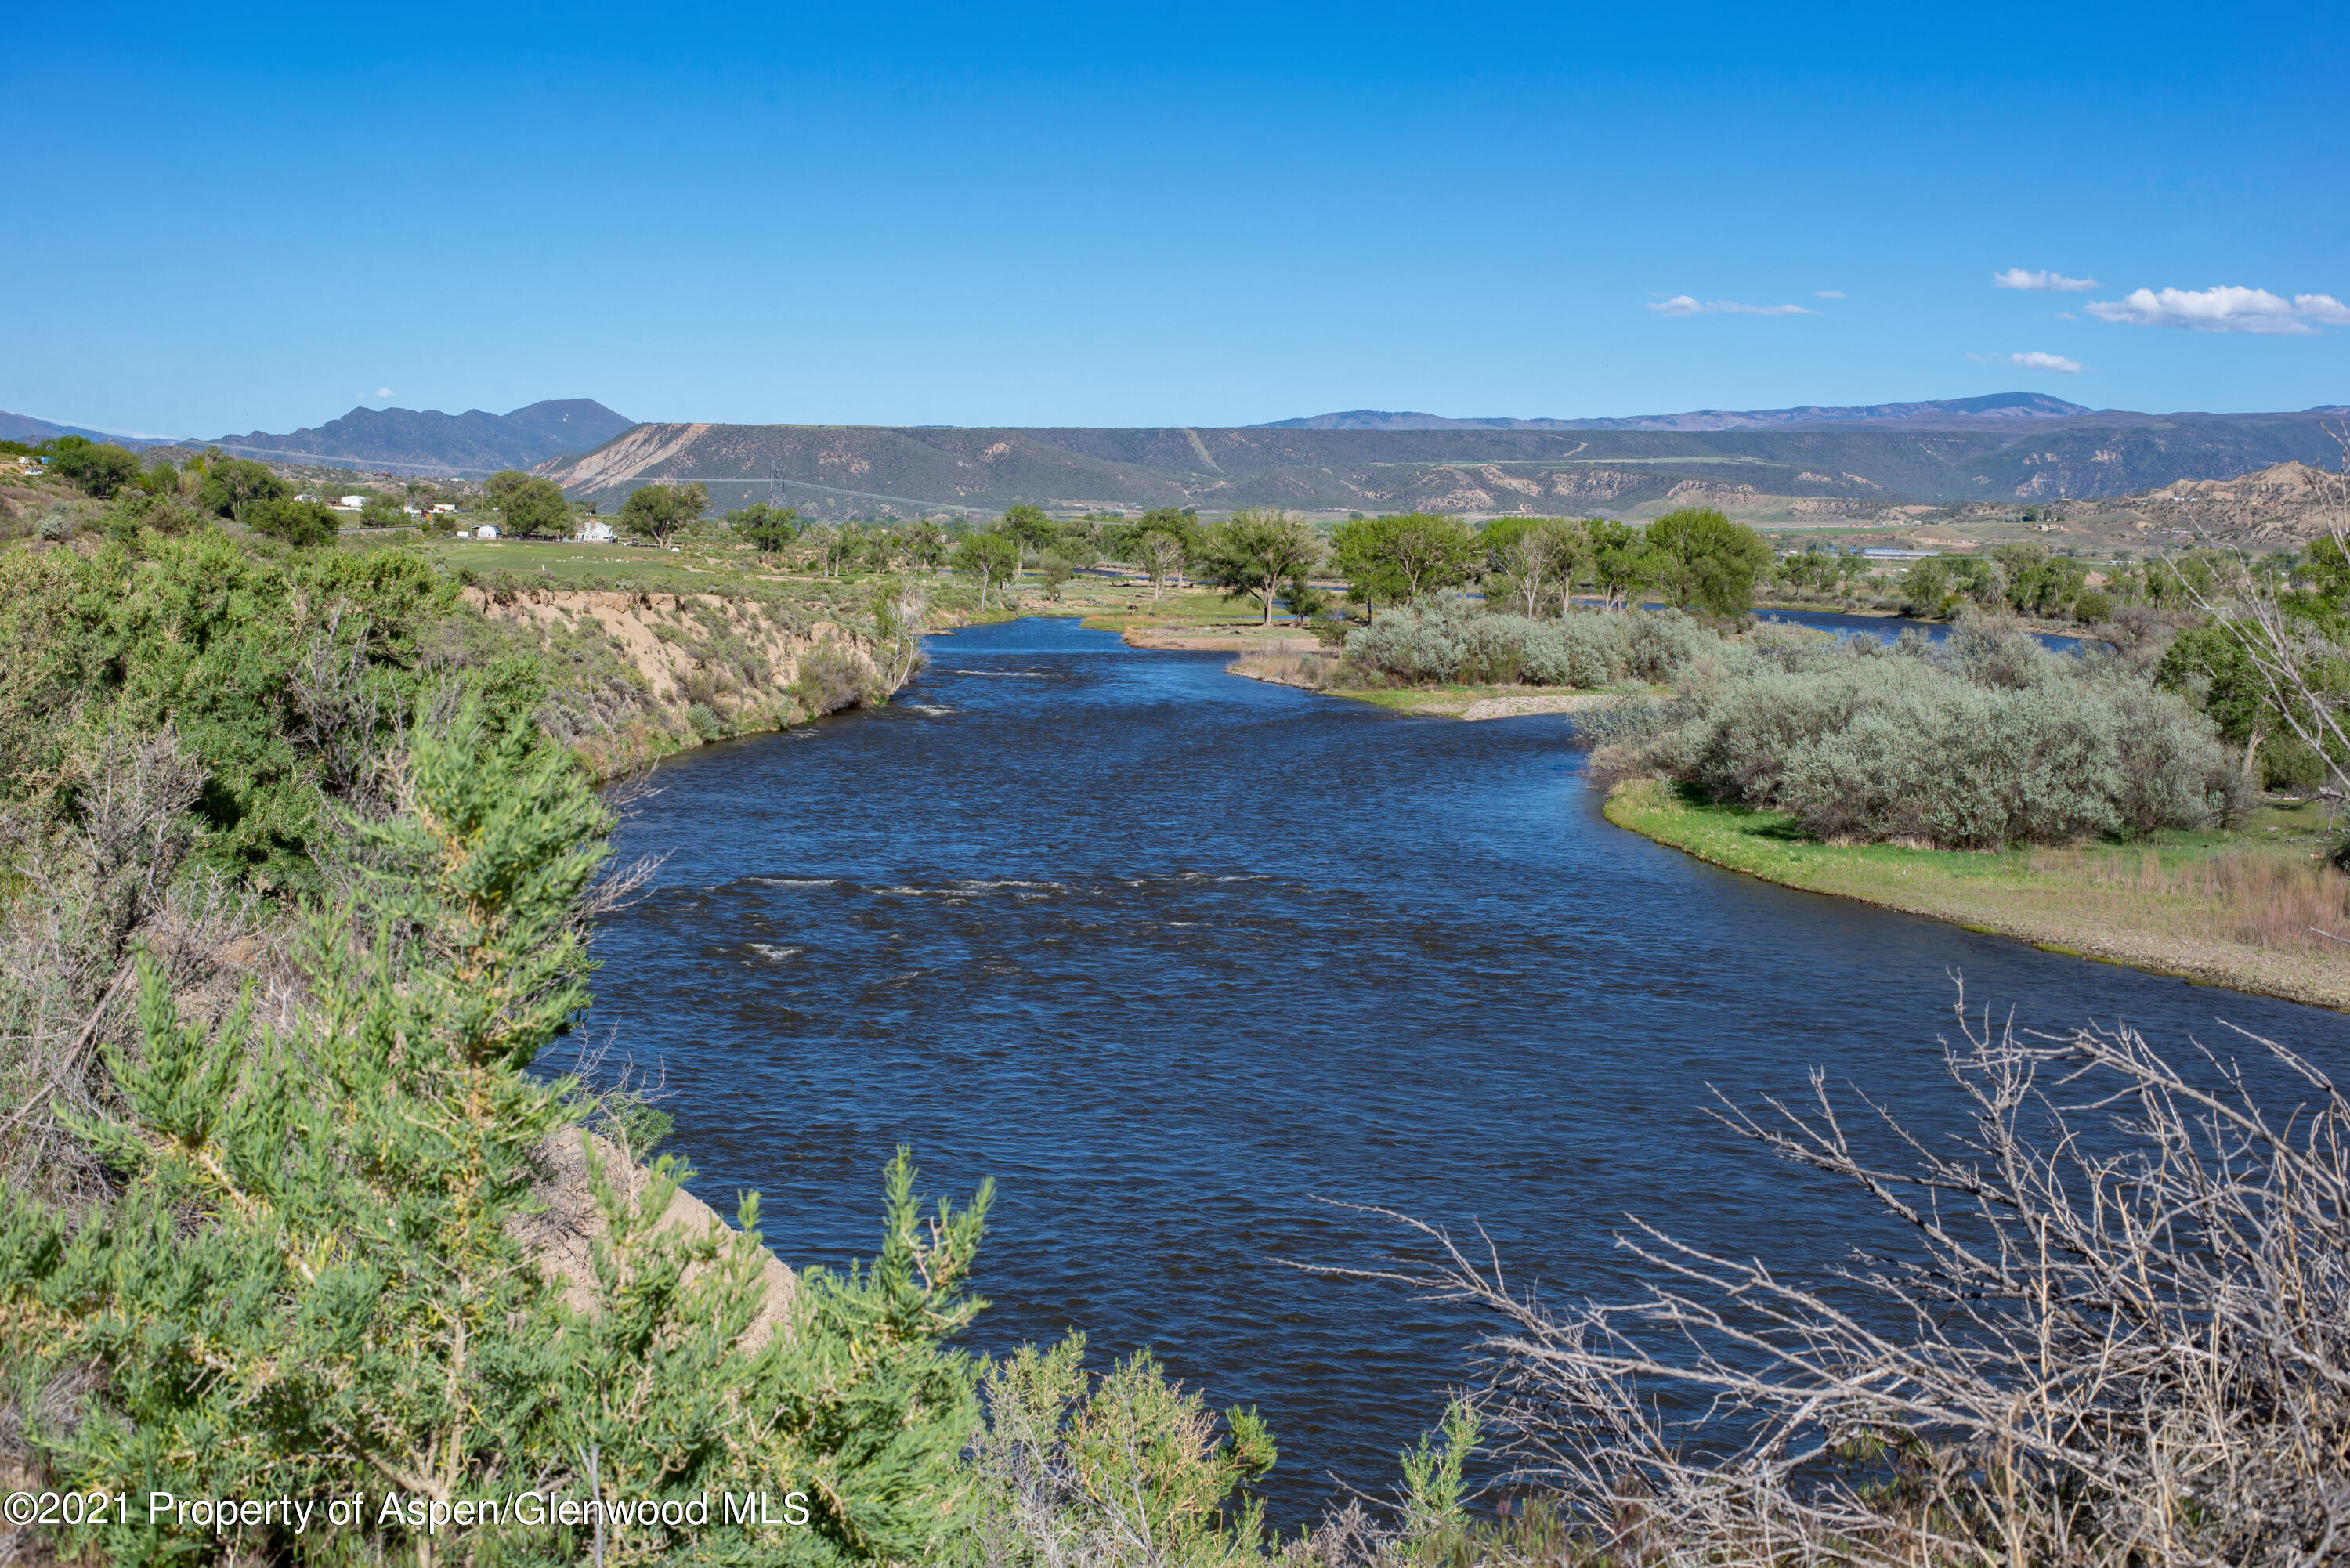 ''Buy land, they're not making it anymore'' - Mark Twain. This statement holds true today, and even more with a rare find like this. 7.923 Acres located on the Colorado River, offering river frontage and views for days. Plan for your future today!